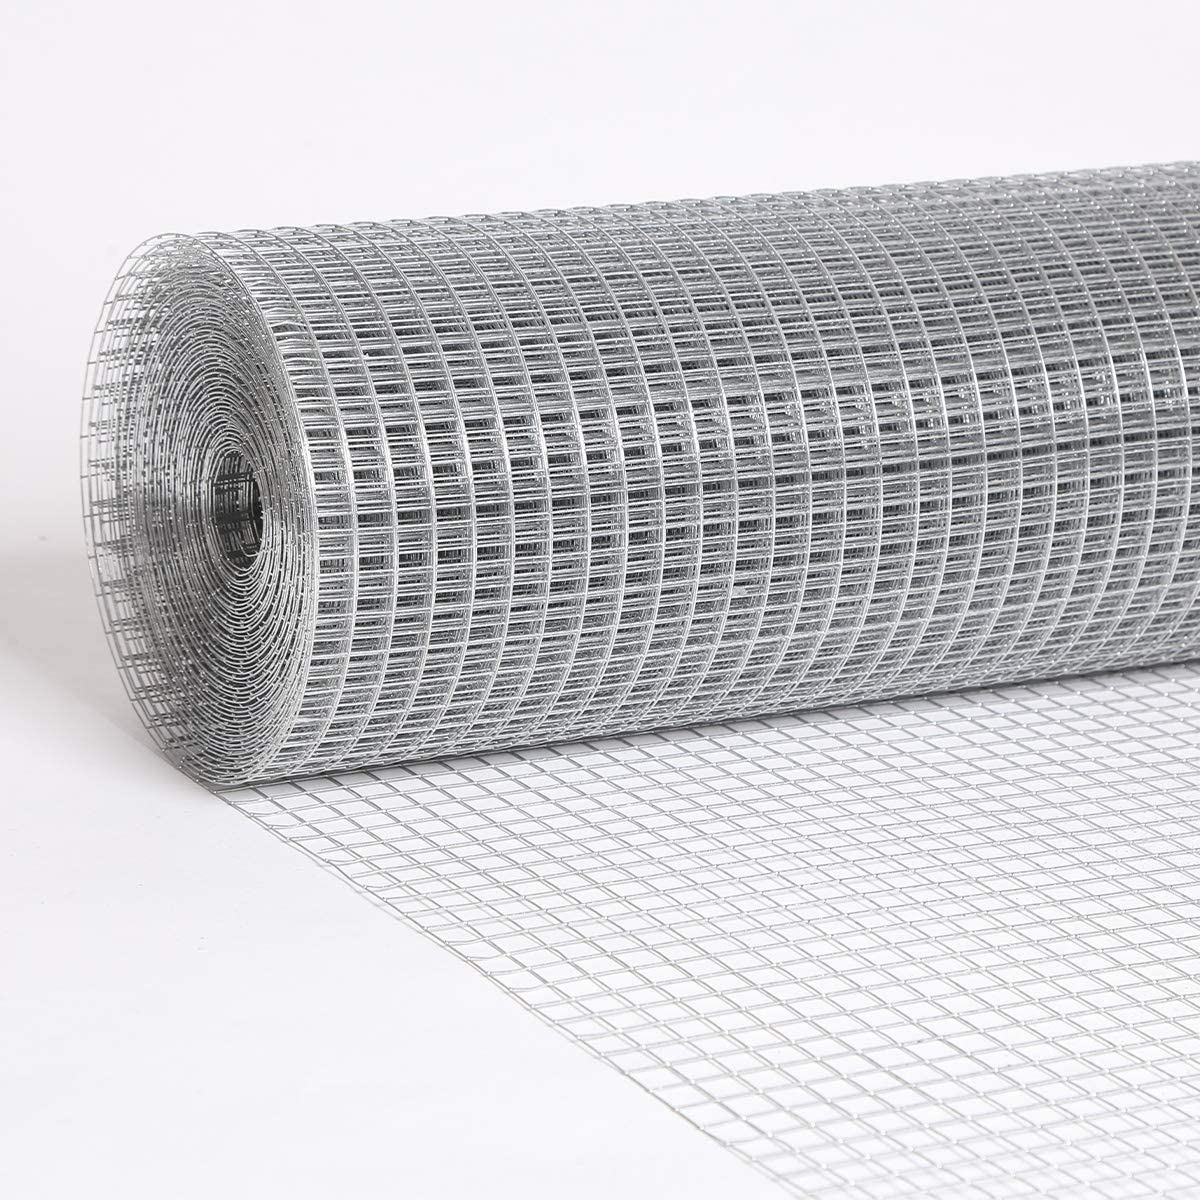 Nueve Deer Hardware Cloth 1/2 Inch 19 Gauge 36''x100' Galvanized After Welding Fence Mesh Roll Garden Plant Supports,Tree Guards, Drains, Gutters, Windows Screen